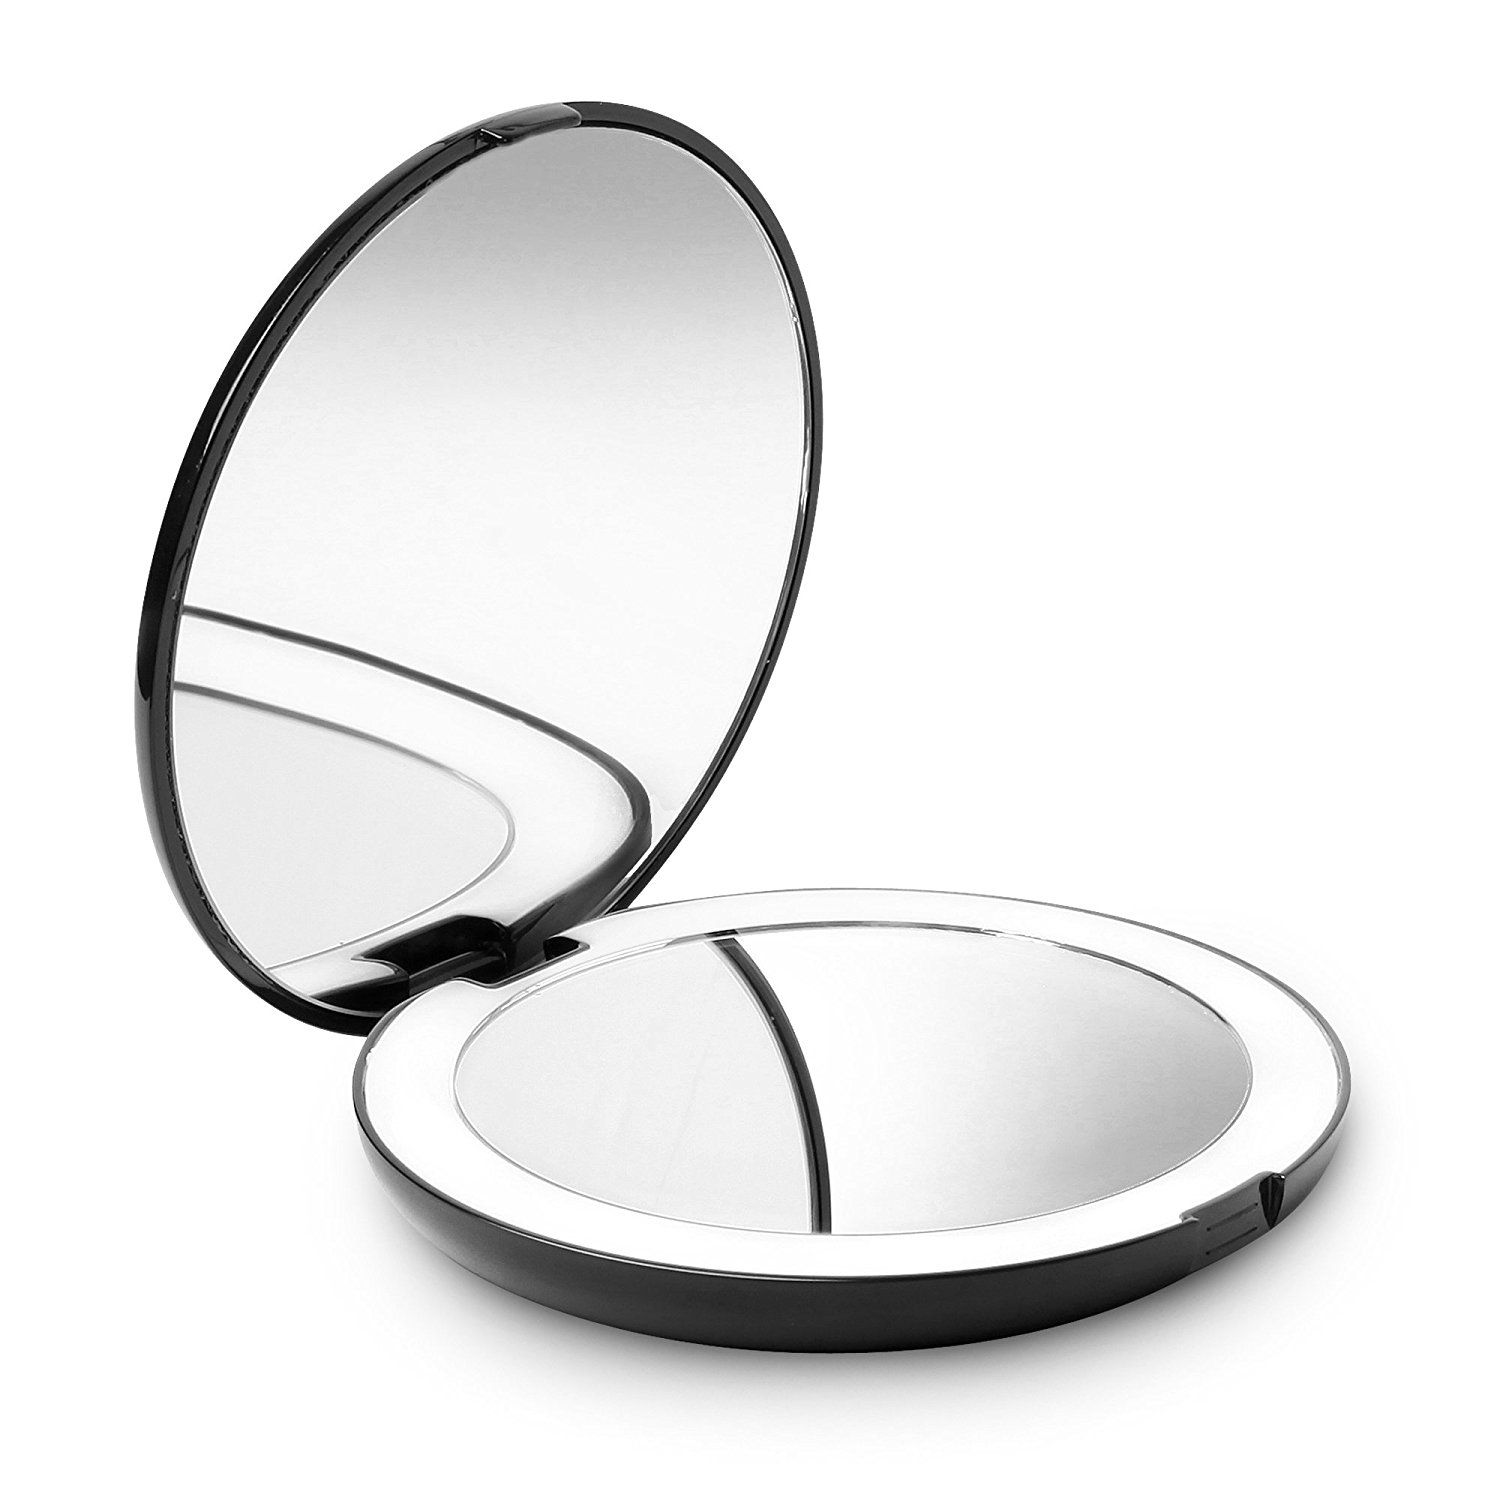 Fancii Led Lighted Travel Makeup Mirror 1x 10x Magnification Daylight Led Compact Portable Lar Travel Makeup Mirror Makeup Mirror With Lights Hand Mirror